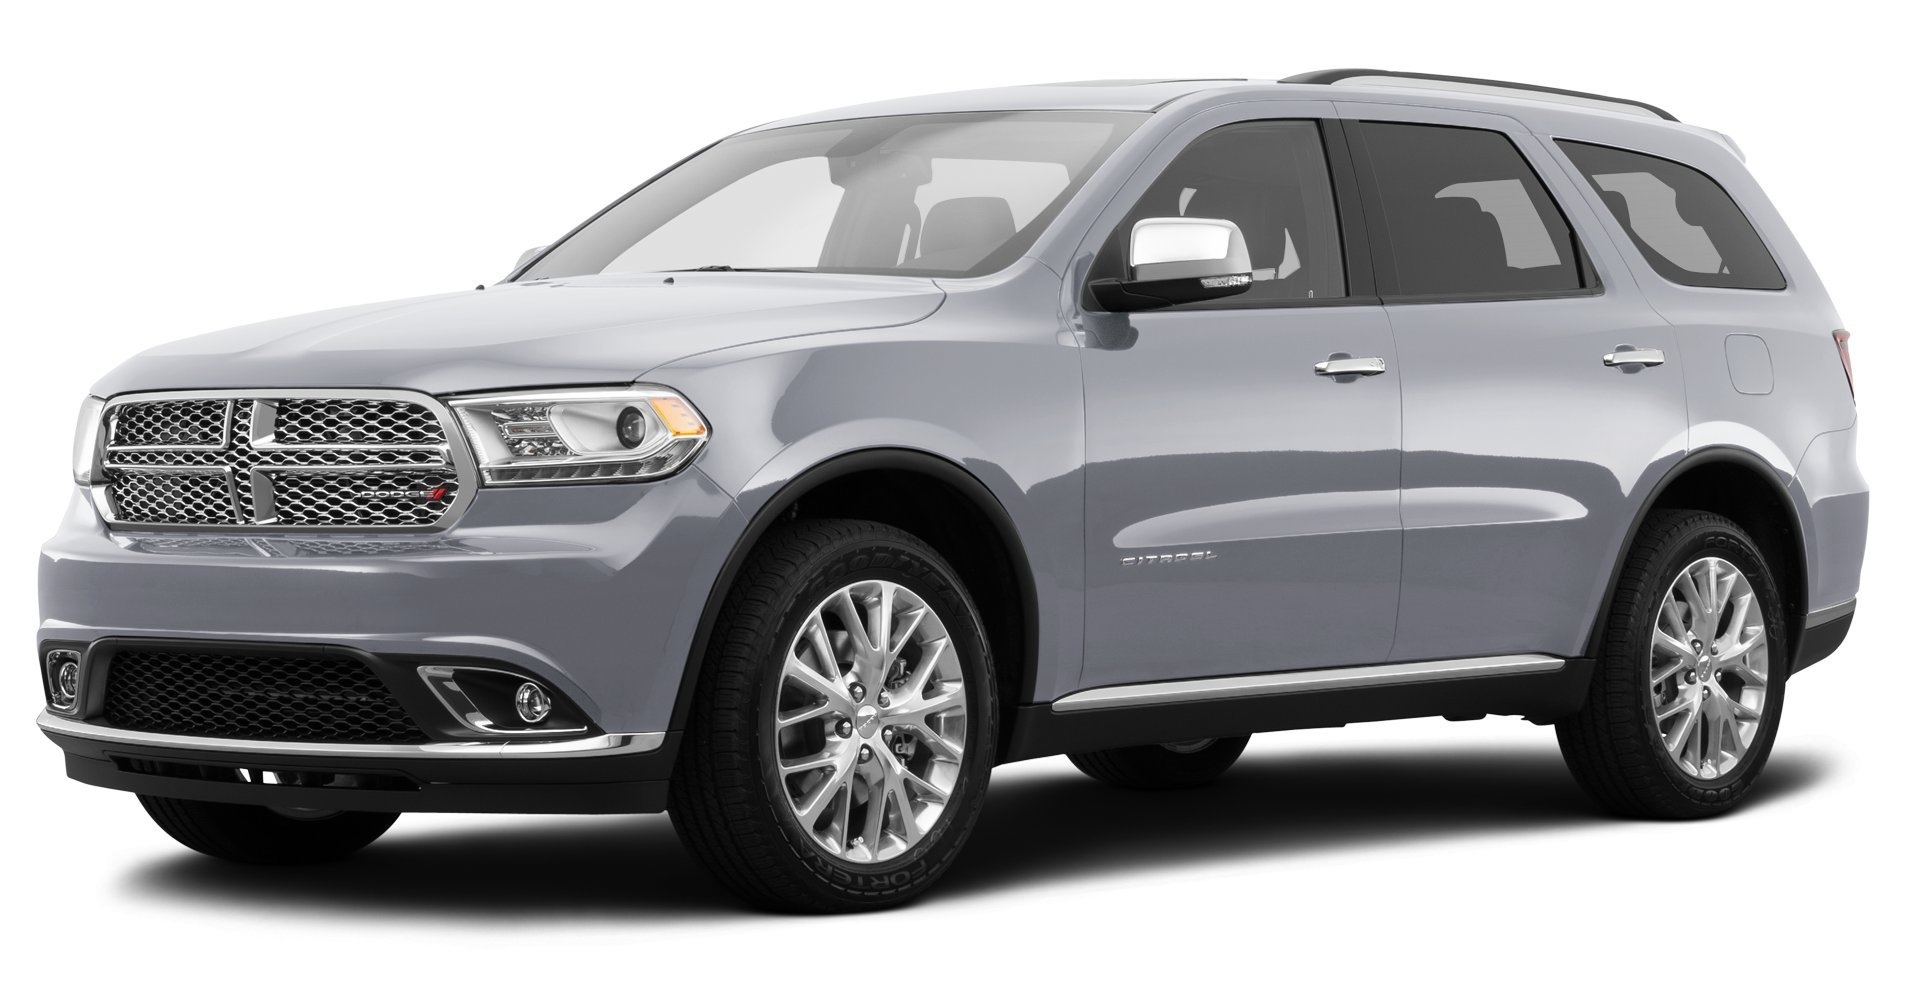 71phv6X emL amazon com 2015 dodge durango reviews, images, and specs vehicles Dodge Ram Trailer Wiring Diagram at creativeand.co